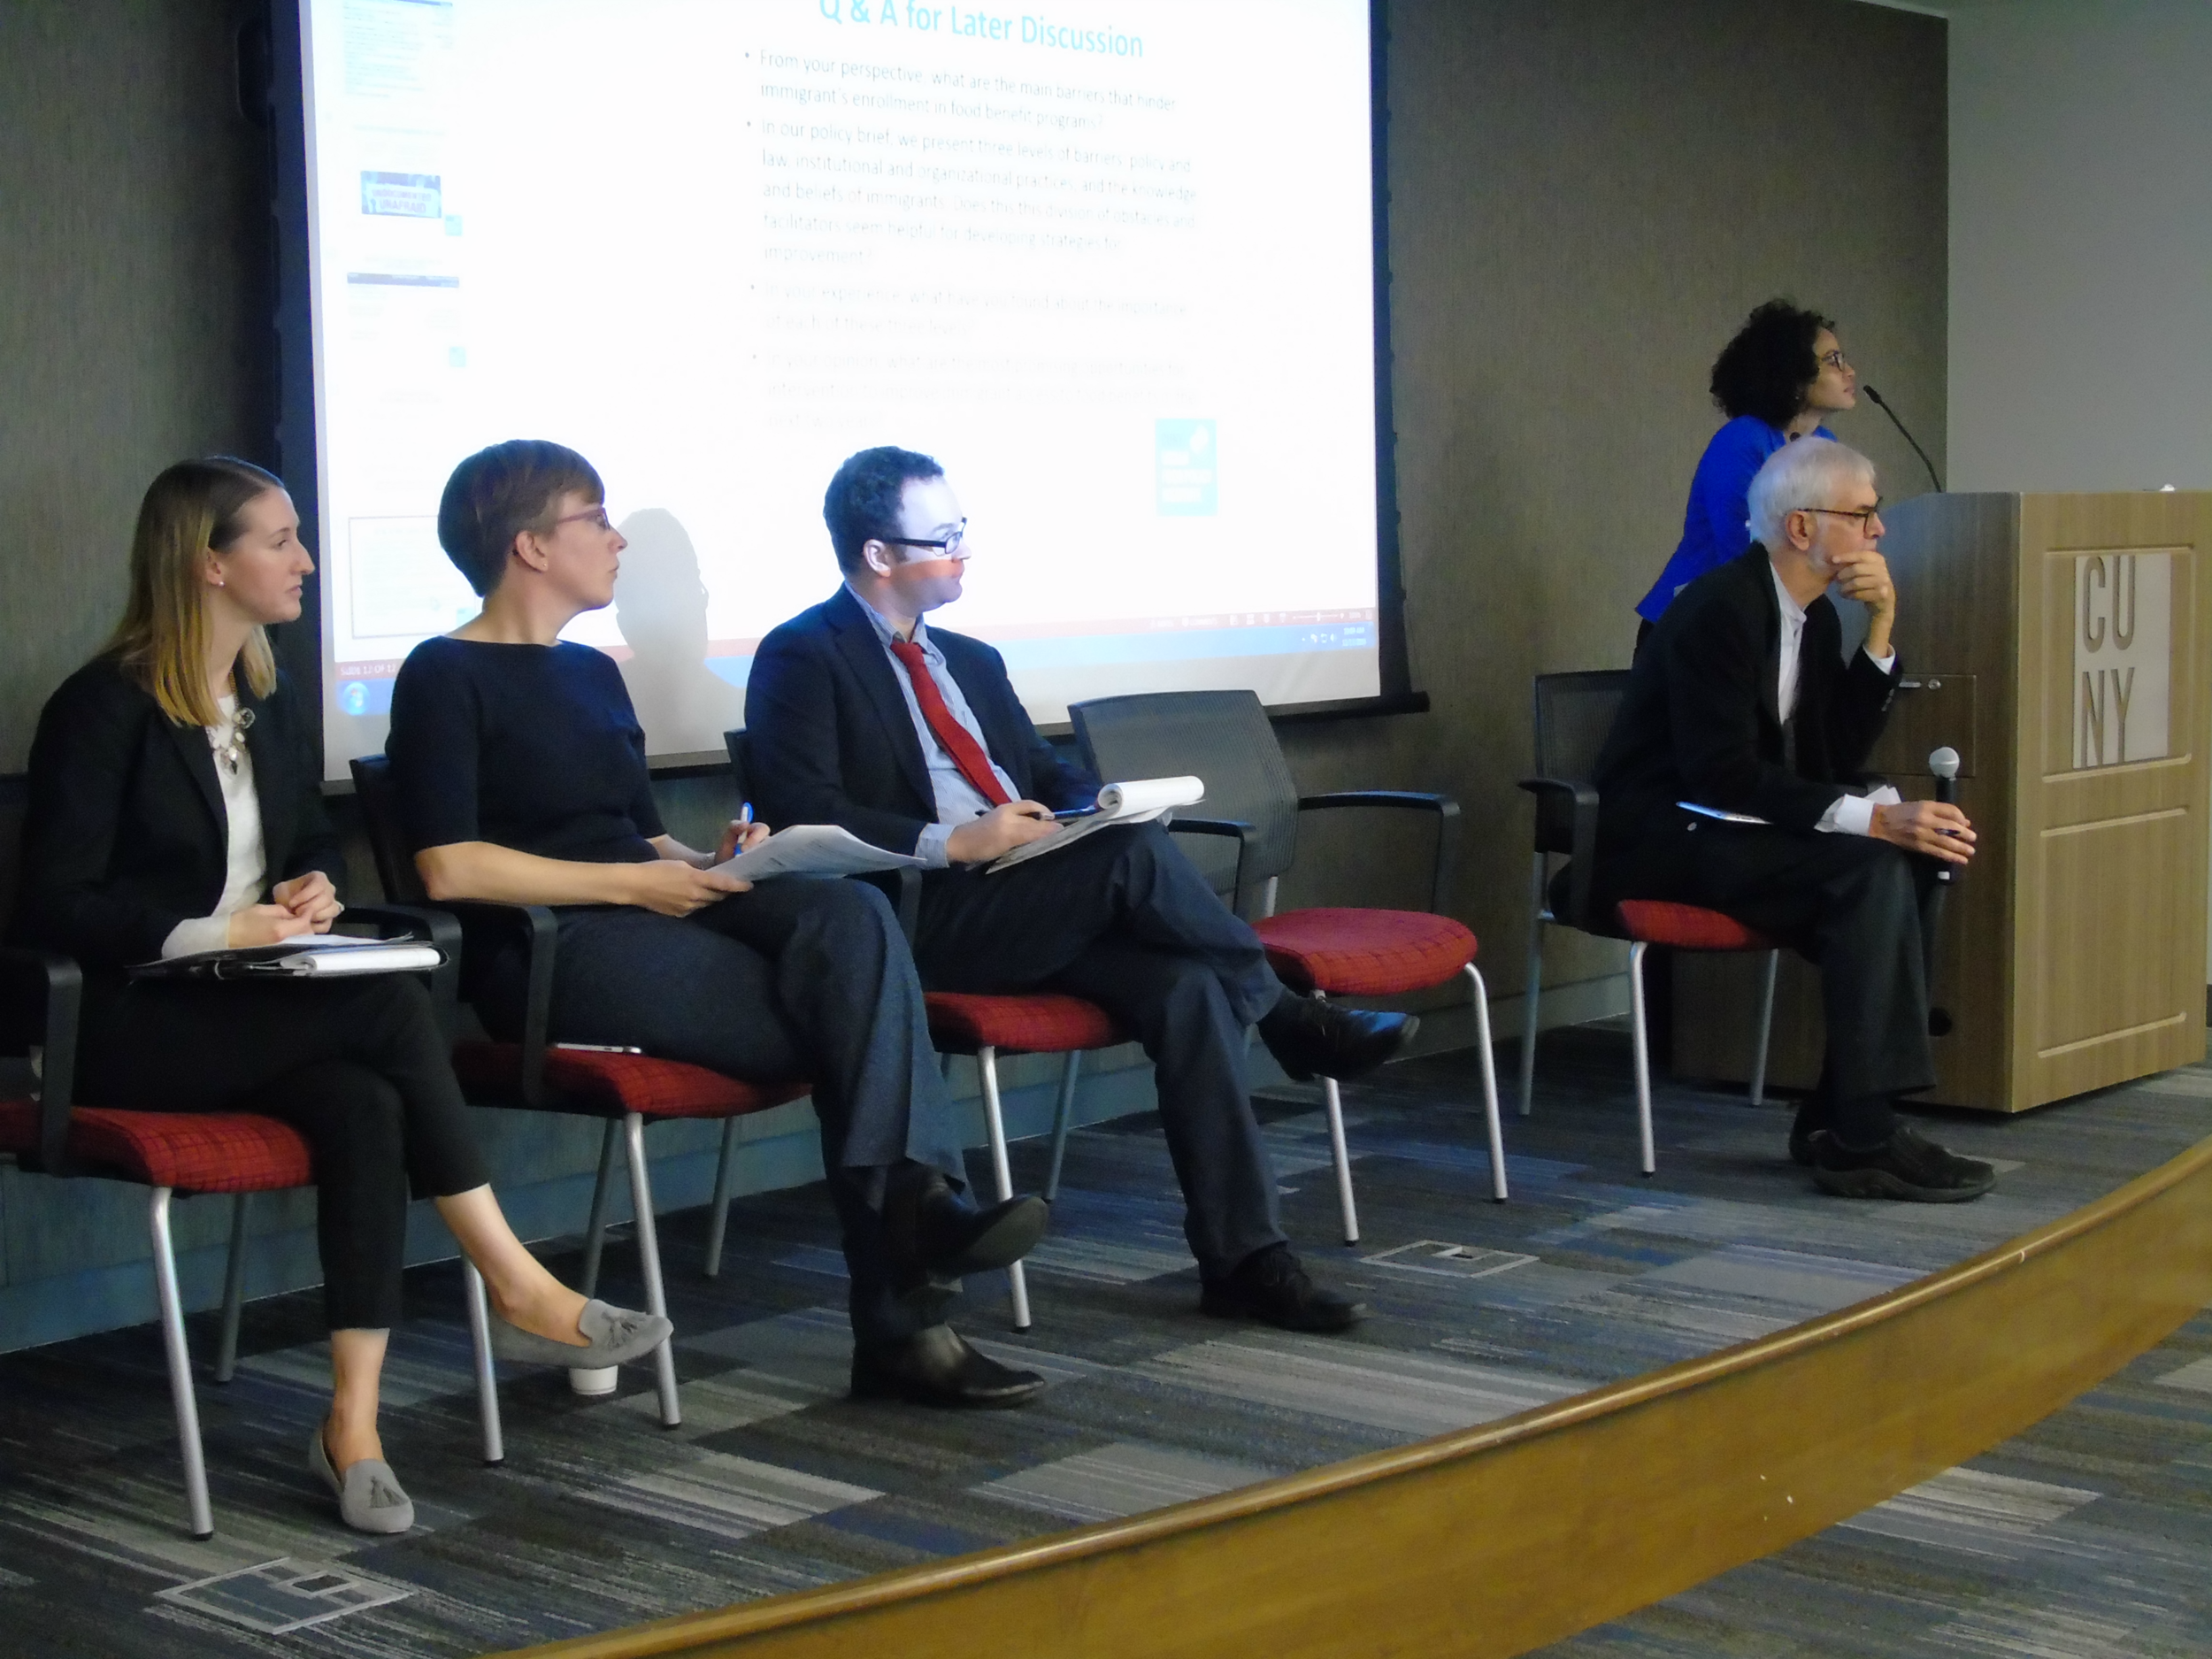 Panelists, from left: Jessica Hughson-Andrade, Metropolitan Council on Jewish Poverty; Els de Graauw, Baruch College, CUNY; Sam Solomon, NYC Mayor's Office of Immigrant Affairs. Nicholas Freudenberg and Anabel Perez-Jimenez moderate.